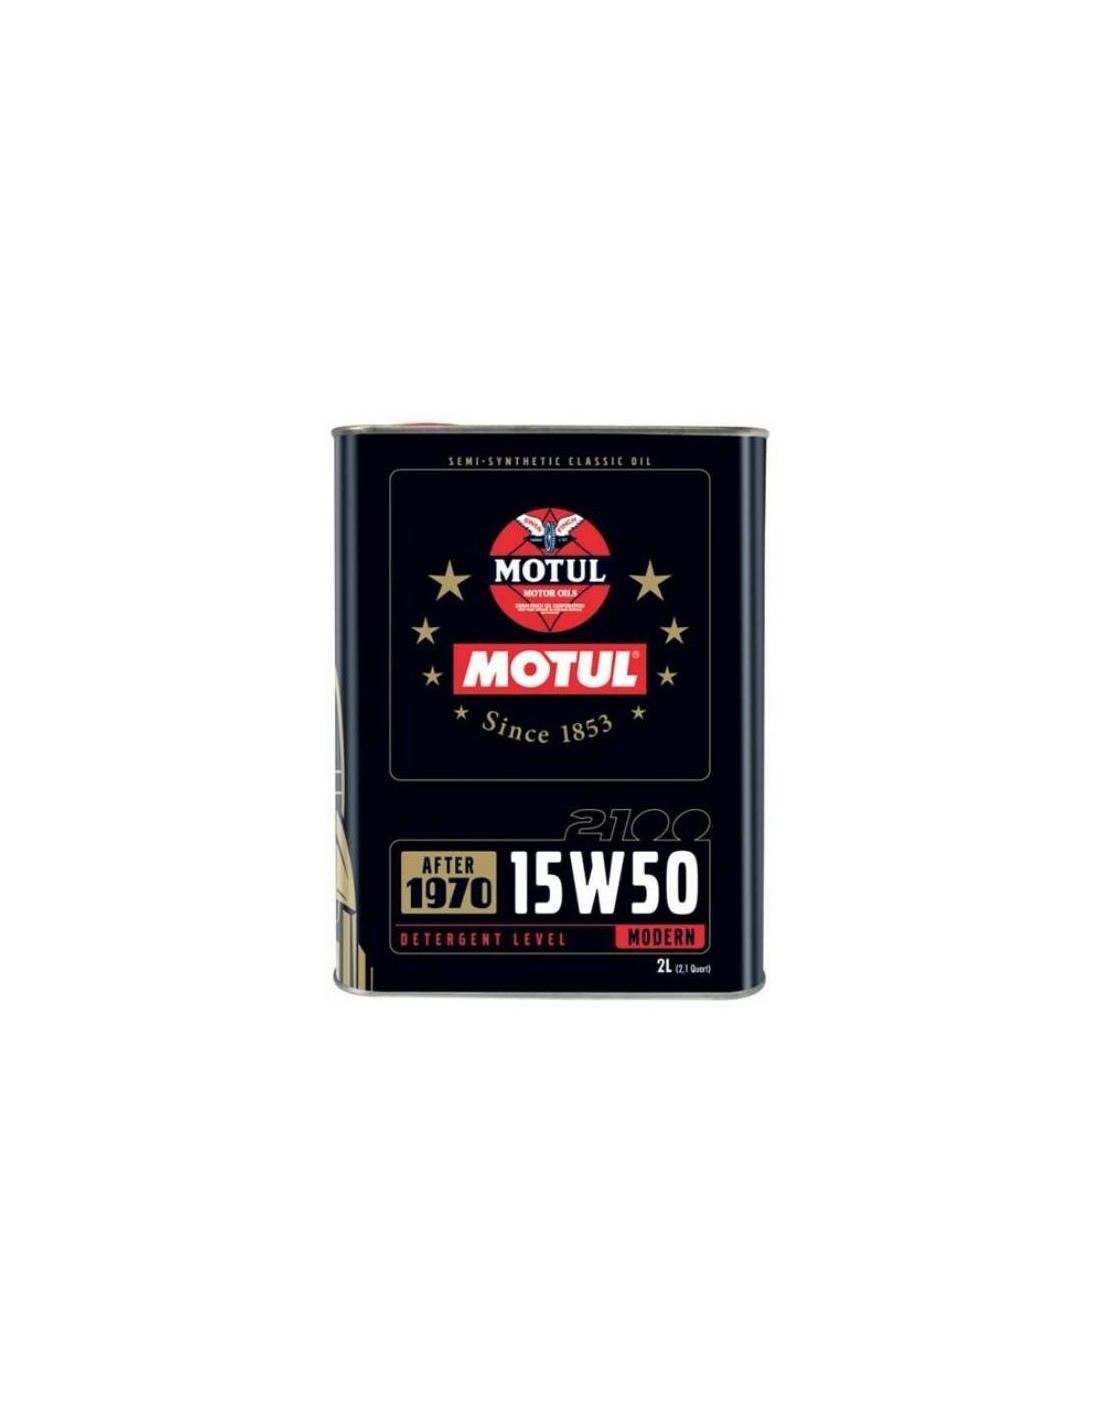 huile moteur multigrade motul classic oil 15w50 bidon de 2 litres. Black Bedroom Furniture Sets. Home Design Ideas